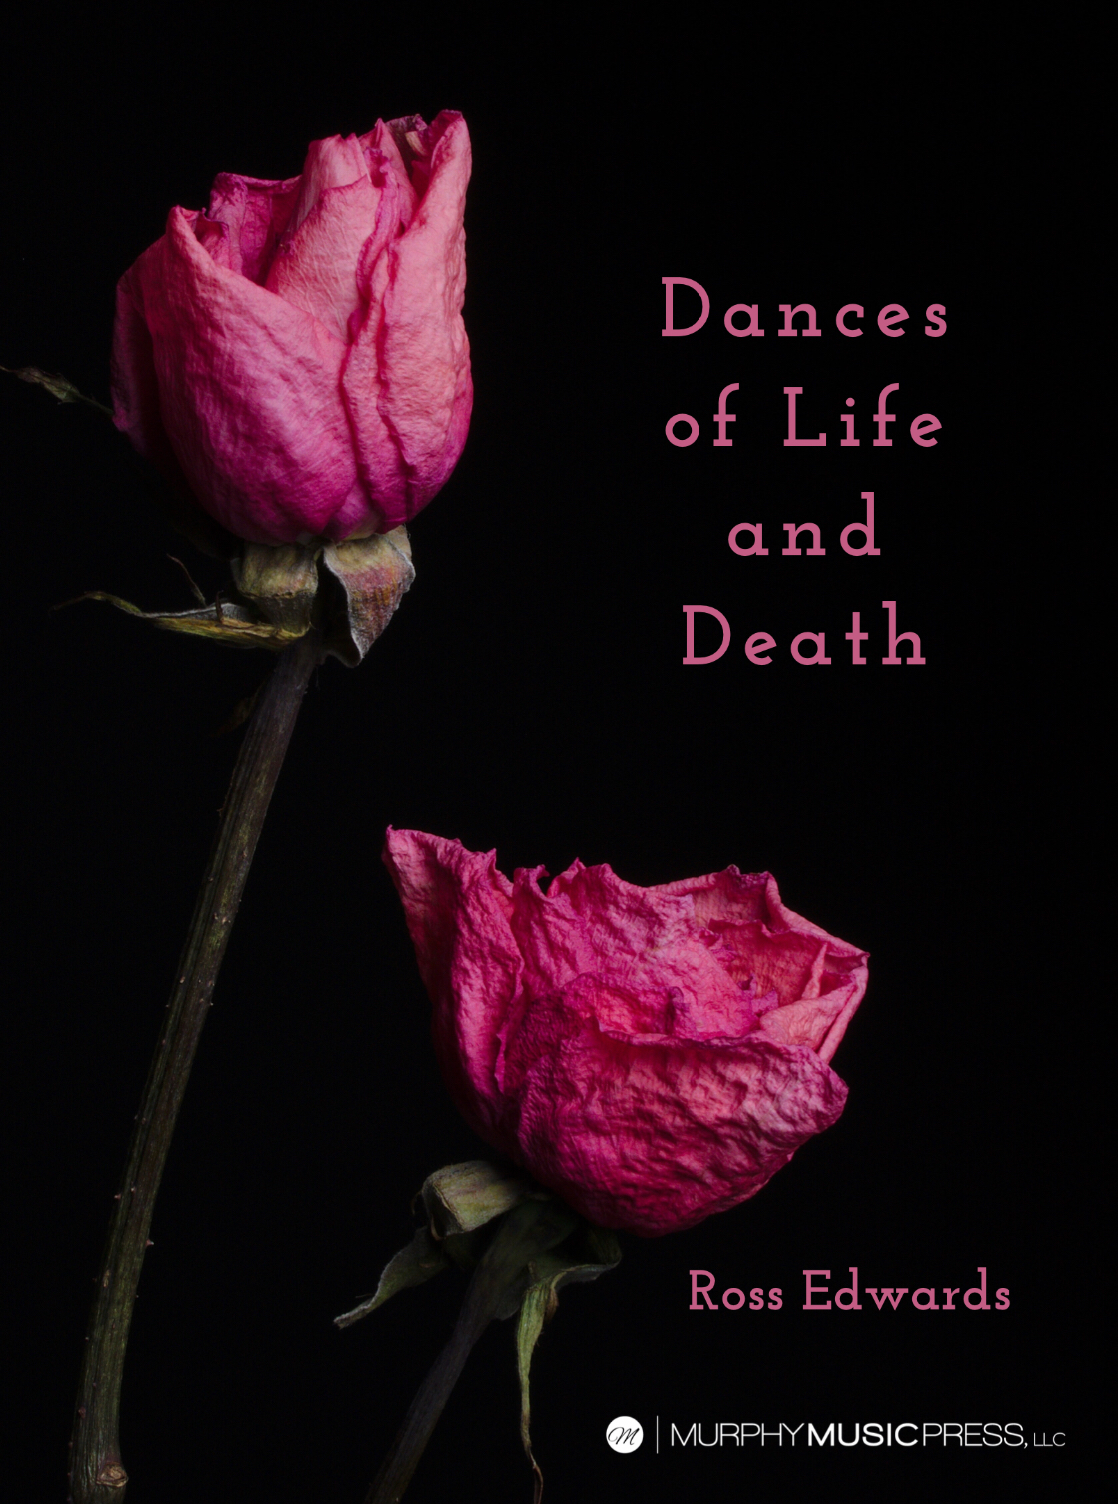 Dances Of Life And Death by Ross Edwards